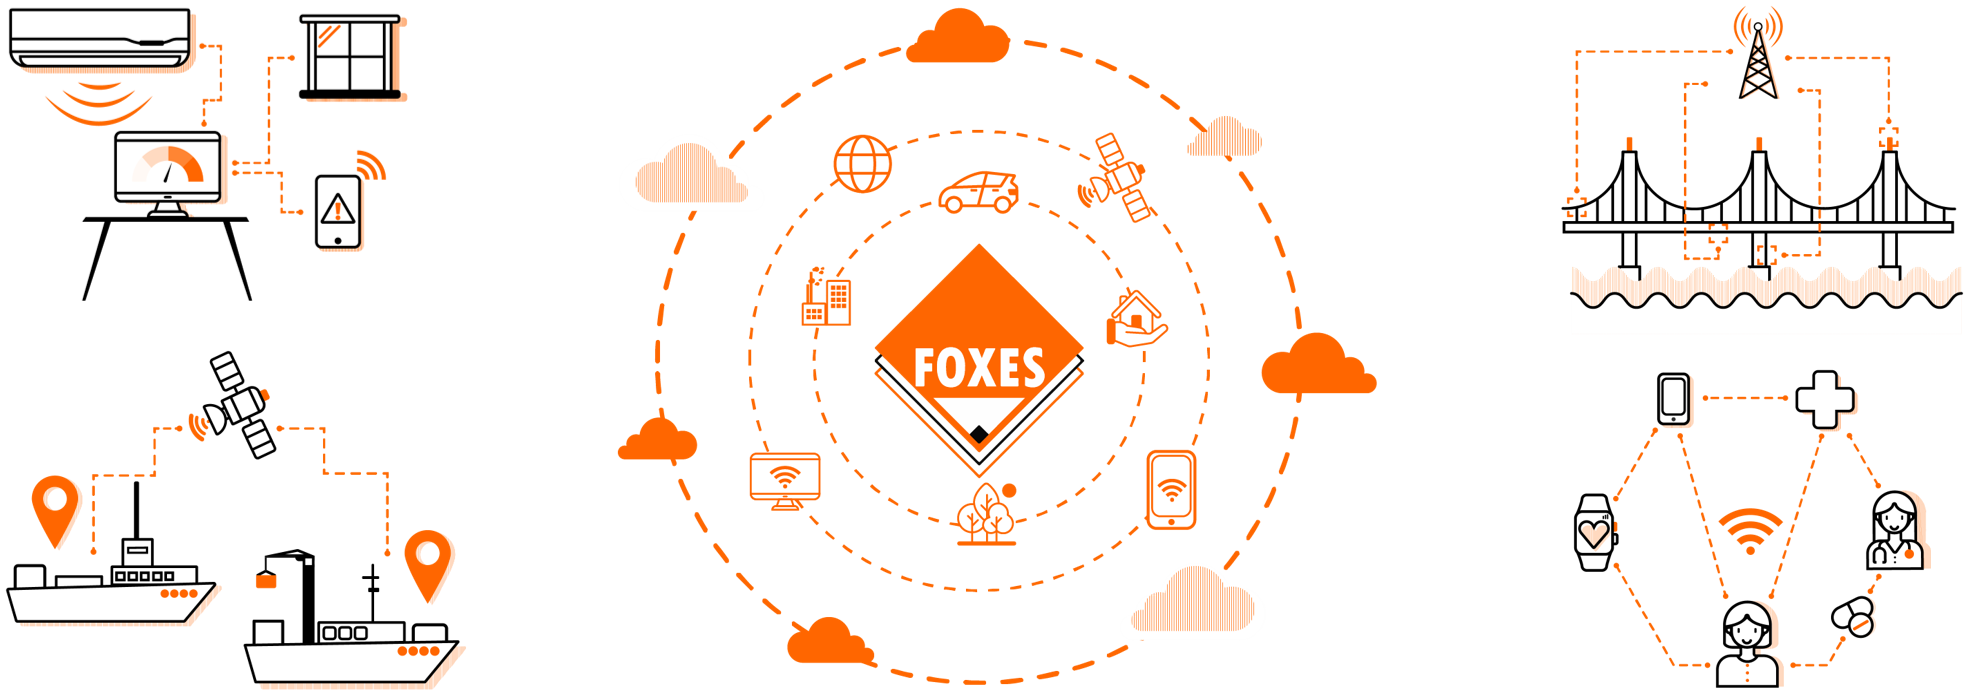 Possible applications of FOXES technology